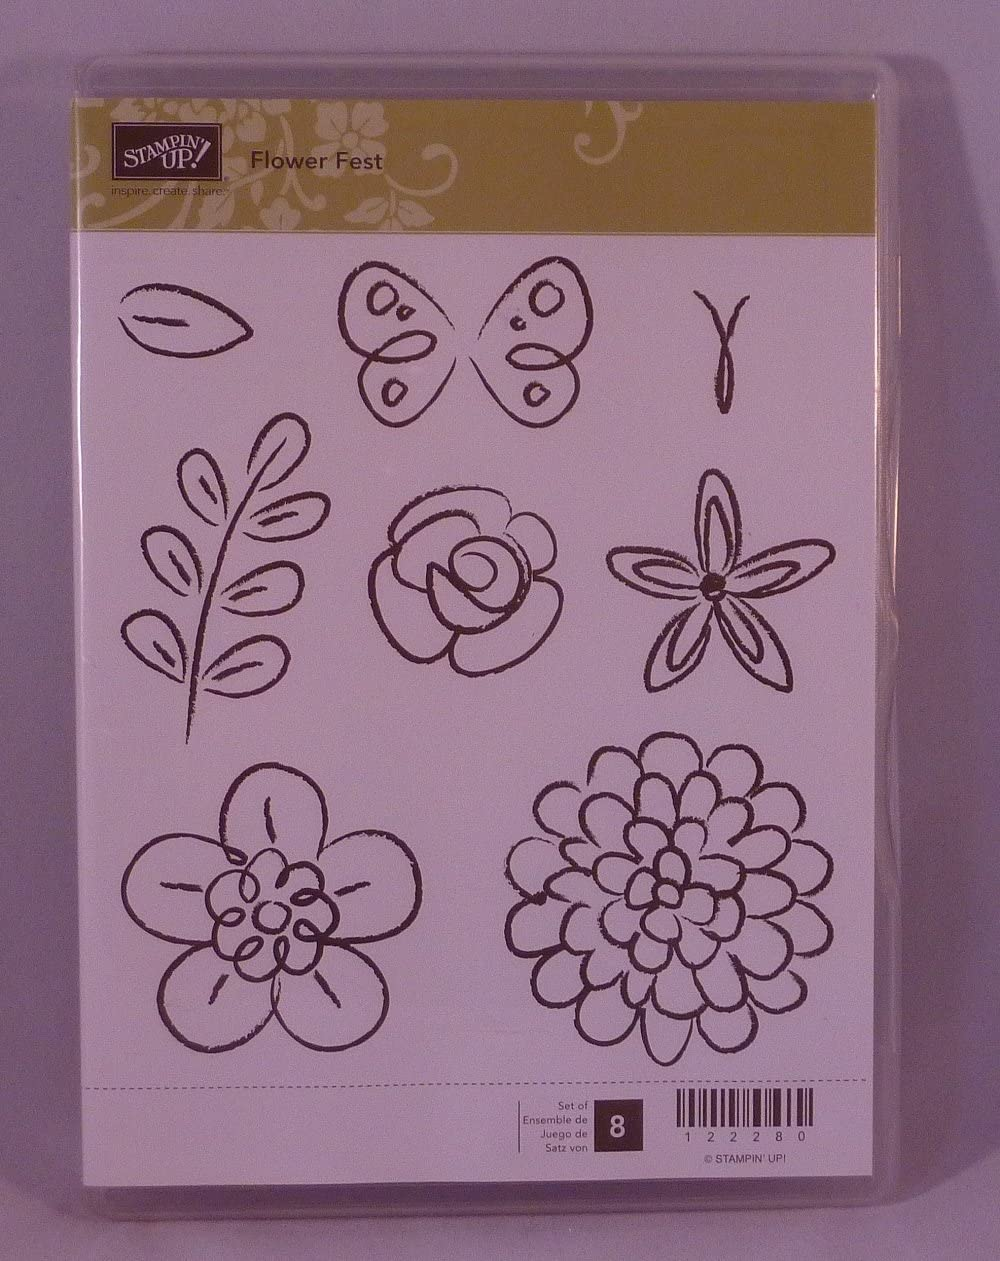 wood stamps hello there hello stamp flower stamp used stamps stampin up set Retired stampin up used stamp set thank you stamps